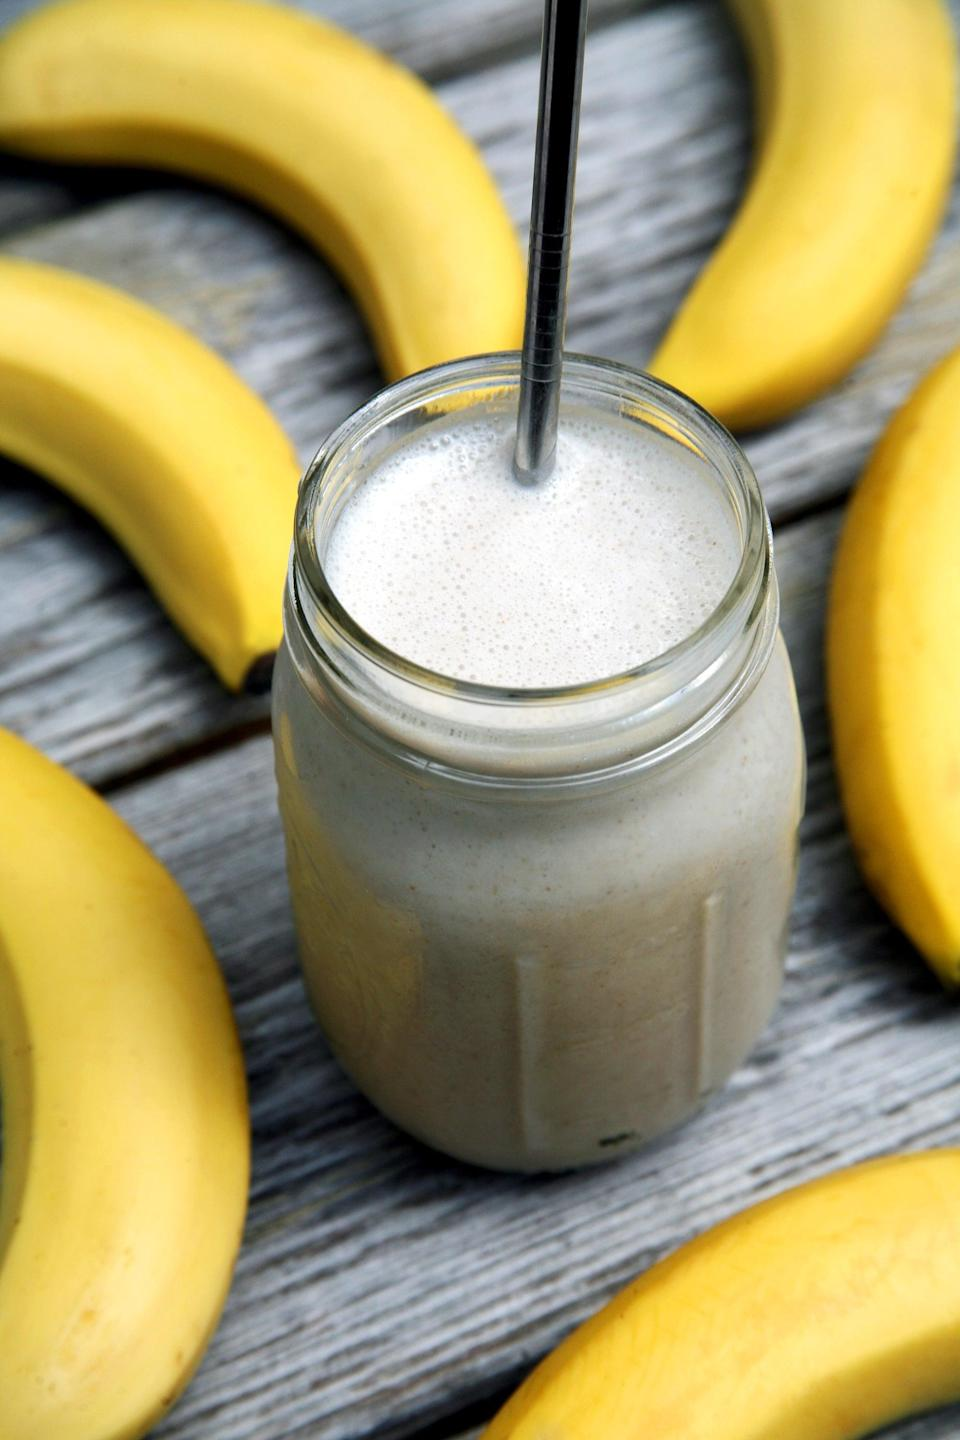 "<p>For the smoothie-making Sagittarius, you'll love sipping on this honest and straightforward banana milkshake smoothie made with only four basic ingredients.</p> <p><strong>Get the recipe</strong>: <a href=""https://www.popsugar.com/fitness/High-Protein-Smoothie-42297968"" class=""link rapid-noclick-resp"" rel=""nofollow noopener"" target=""_blank"" data-ylk=""slk:banana milkshake smoothie"">banana milkshake smoothie</a></p>"